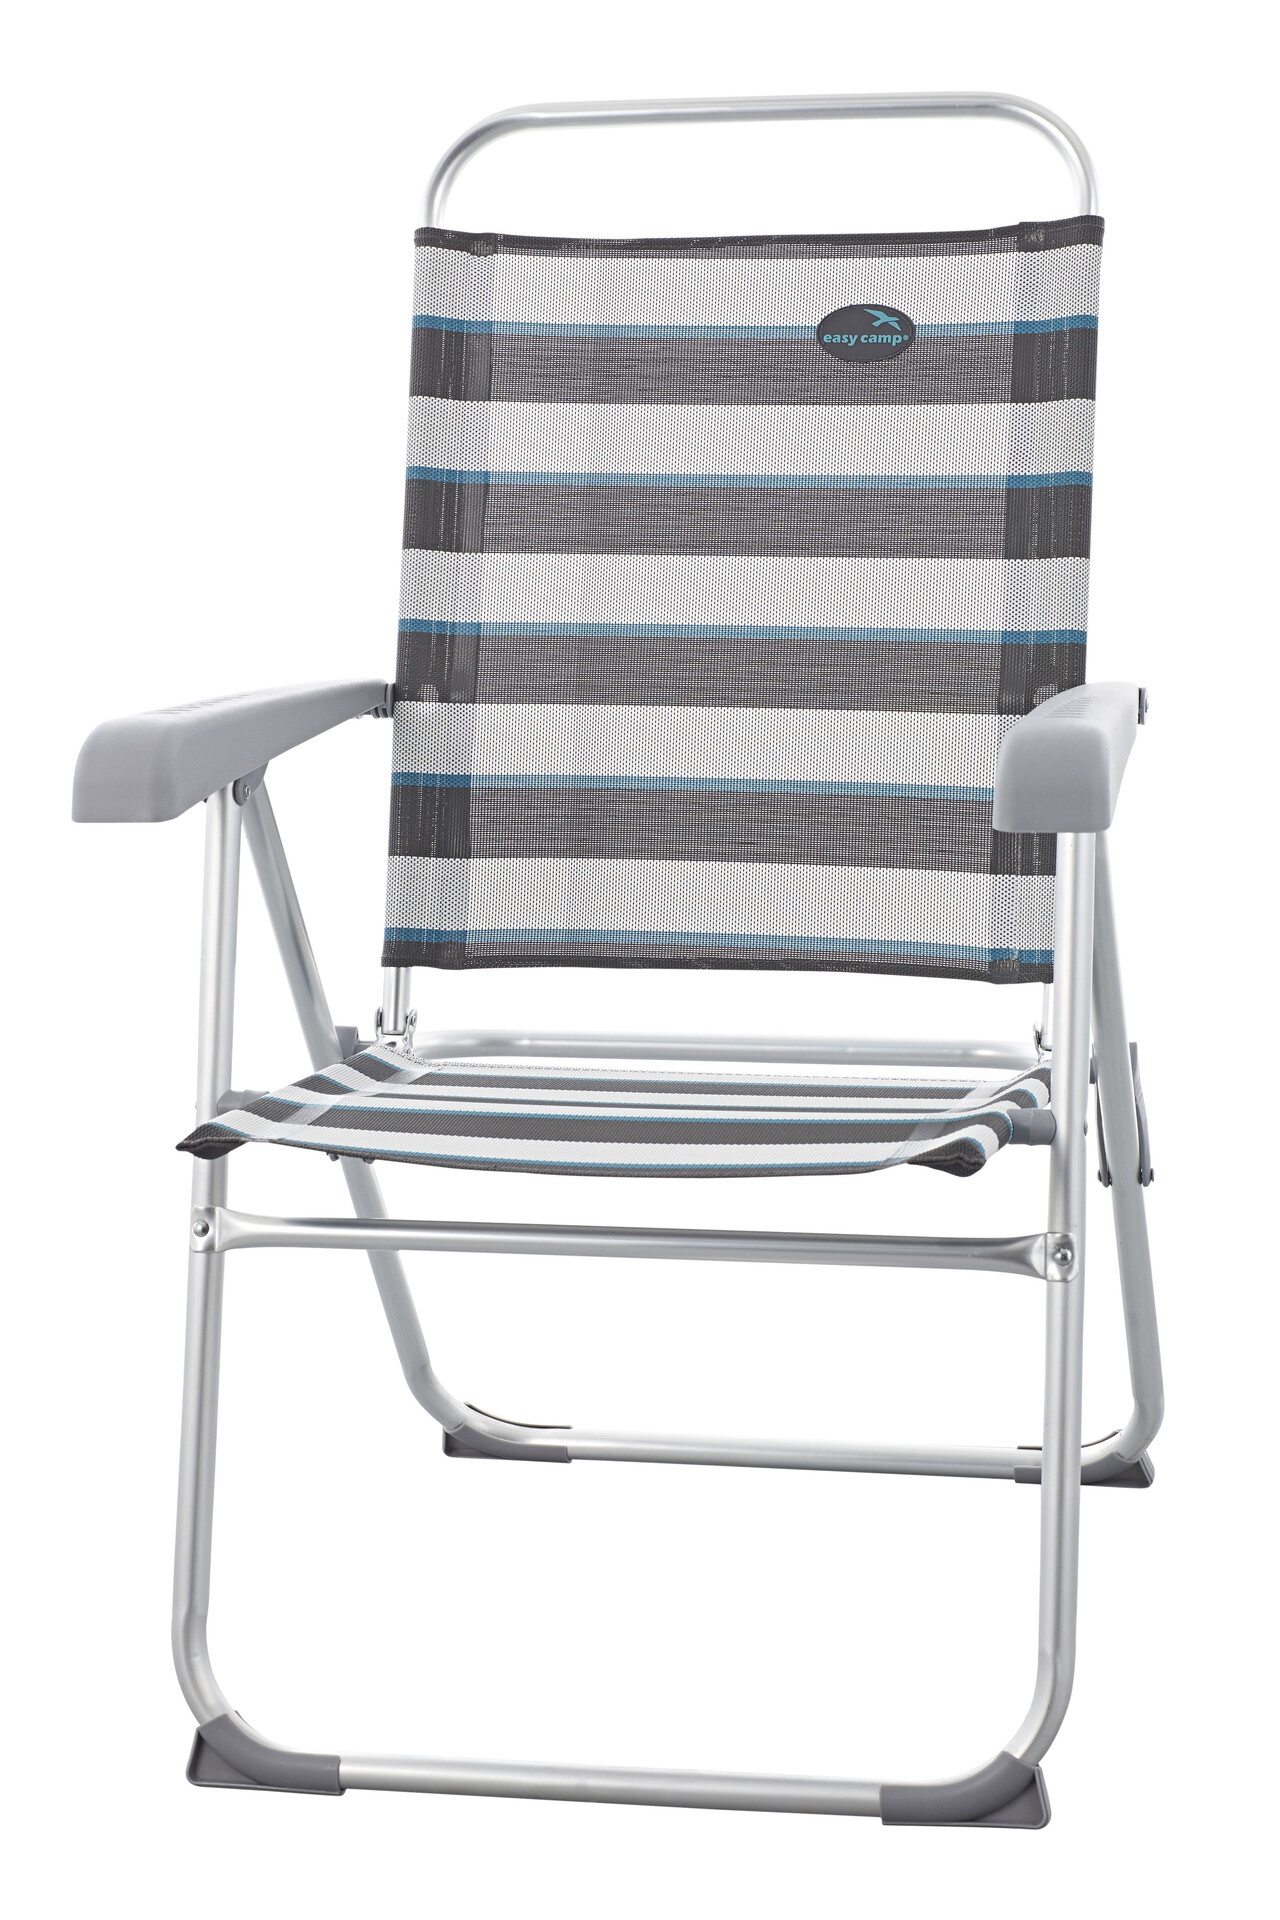 North Camp Stuhl Easy Camp Spica Folding Chair